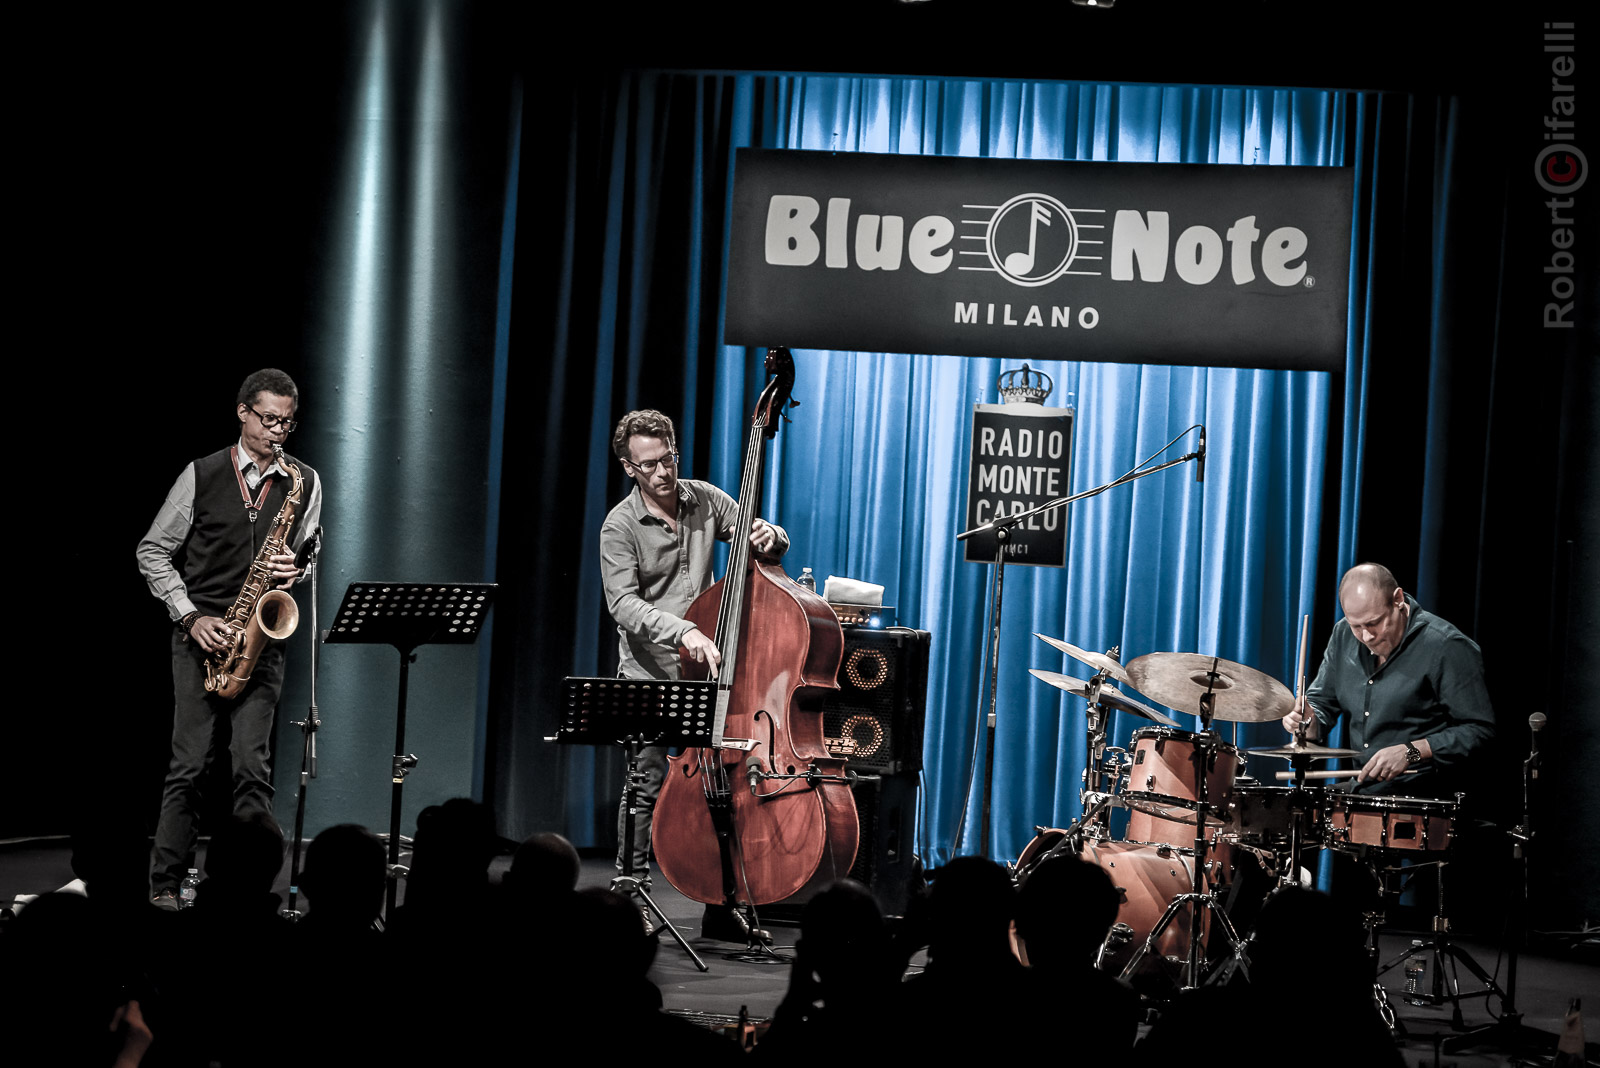 Fly Trio at Bluenote in Milan